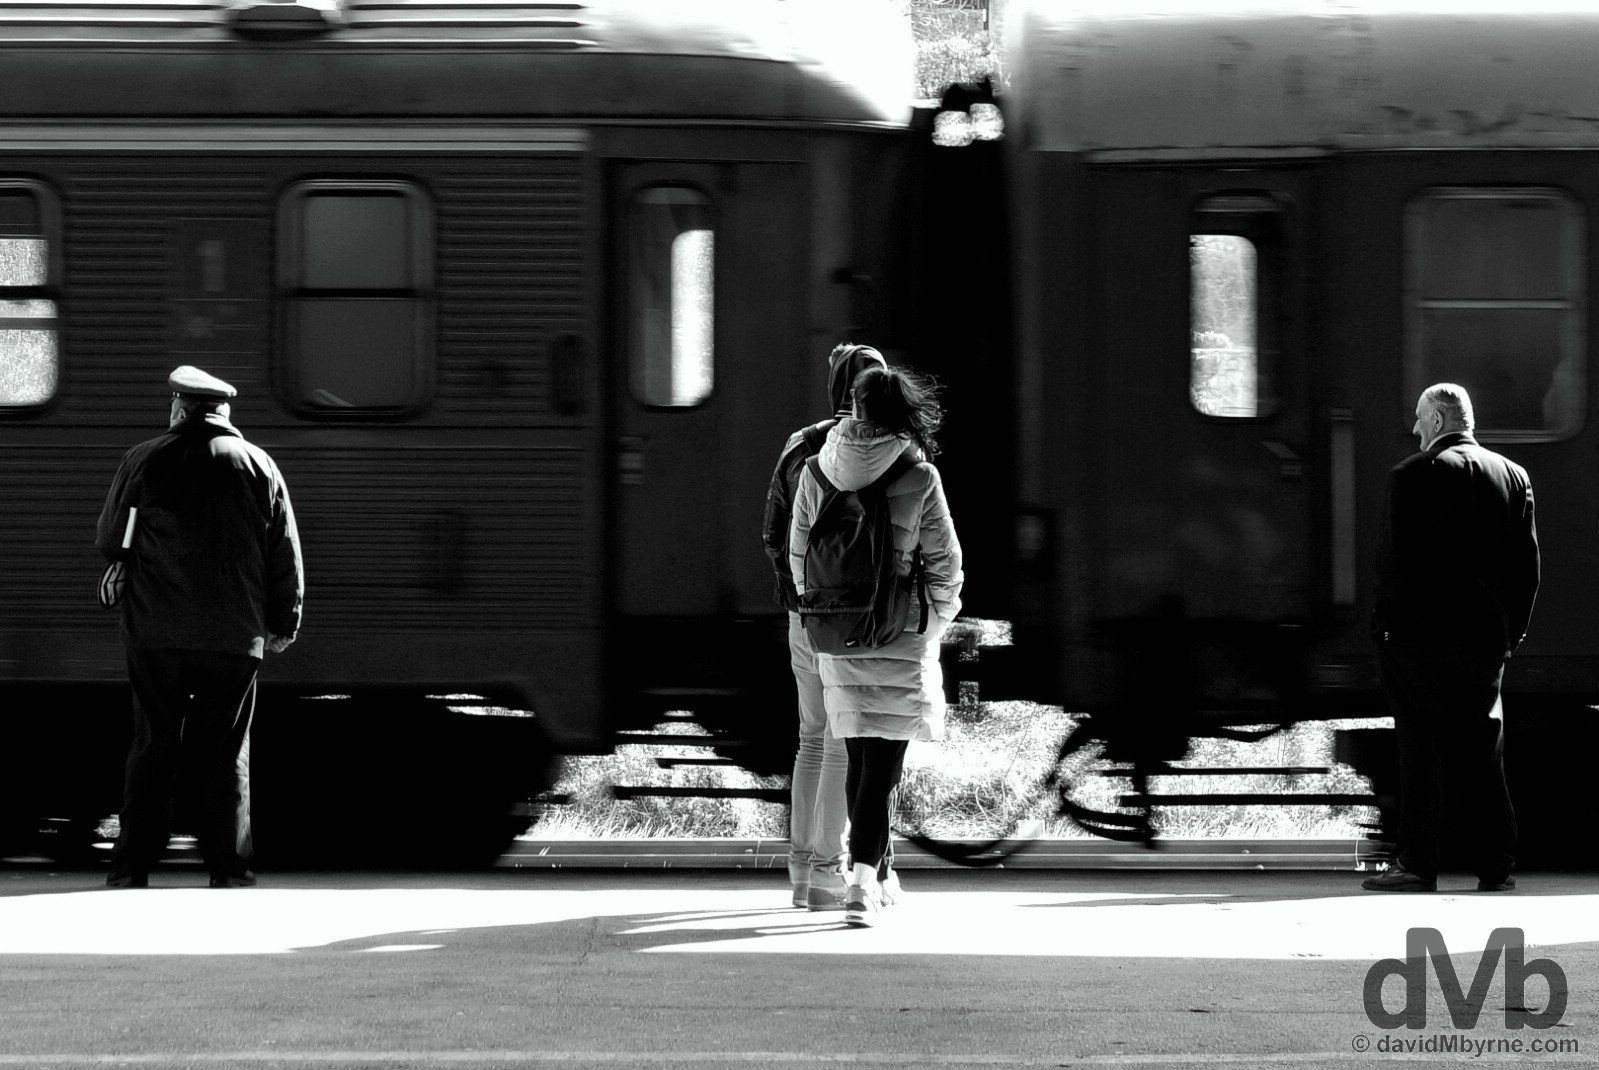 On the platform of Mostar train station, Bosnia & Herzegovina. April 6, 2015.